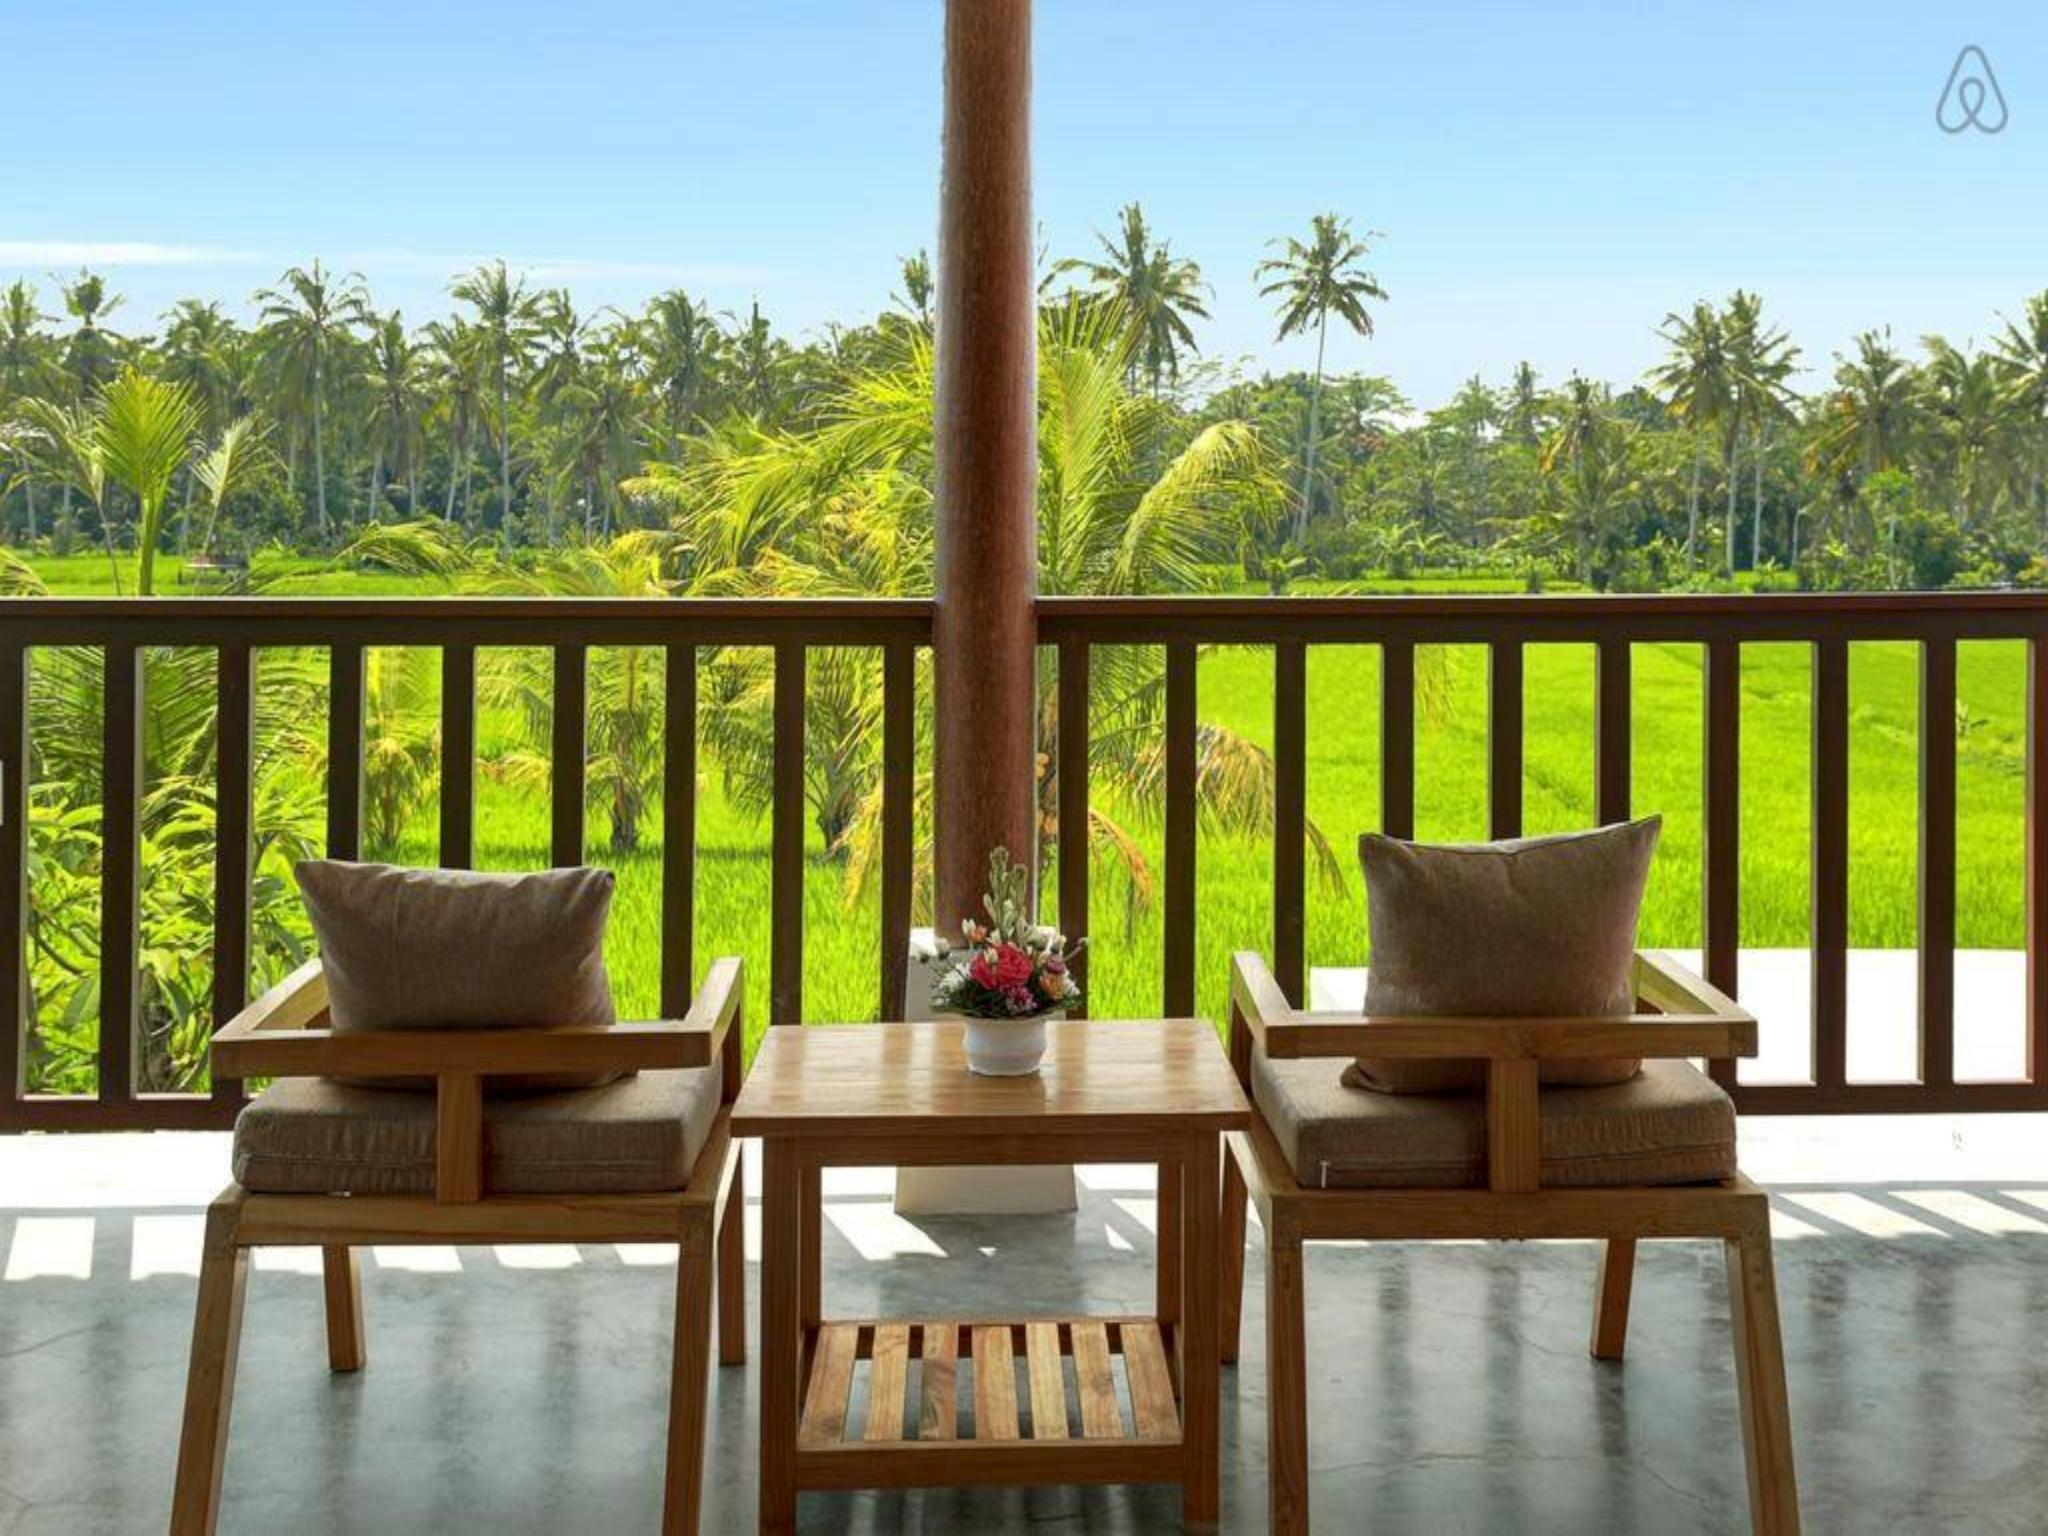 3 BDR Villas Sativa Suite at Ubud